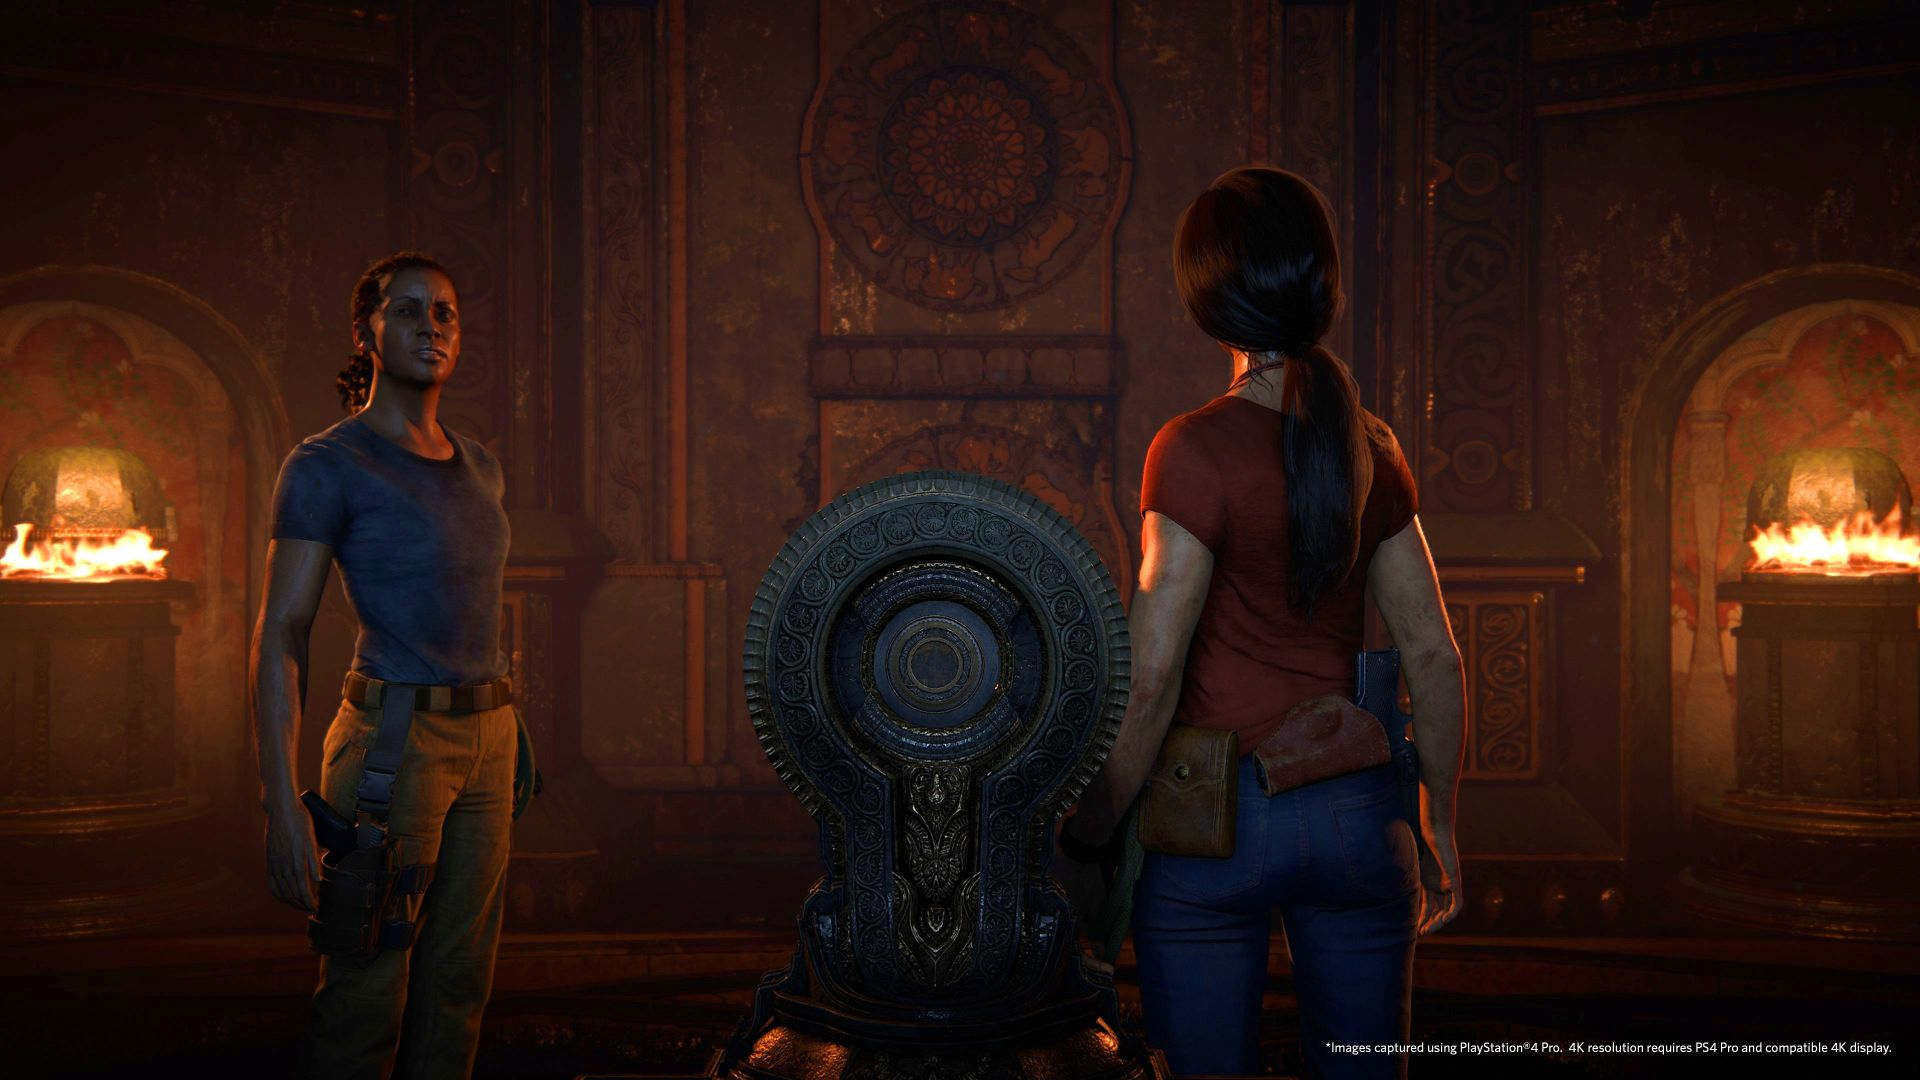 Uncharted: The Lost Legacy, 4k, PS4 Pro, screenshot, E3 2017 (horizontal)